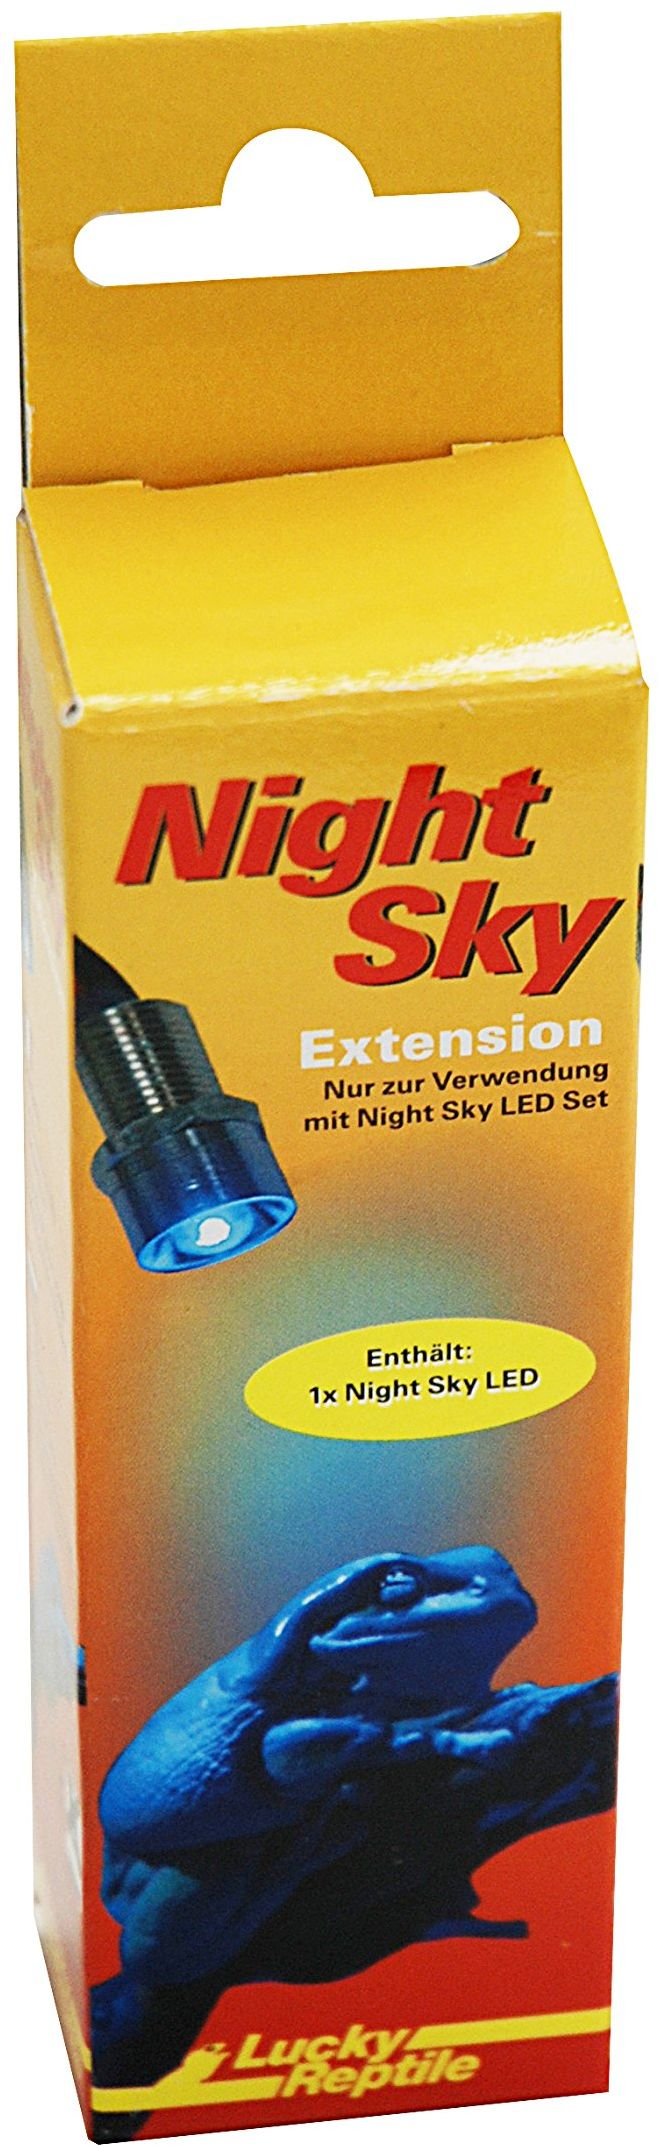 Lucky Reptile NS-2 Night Sky Extension LED